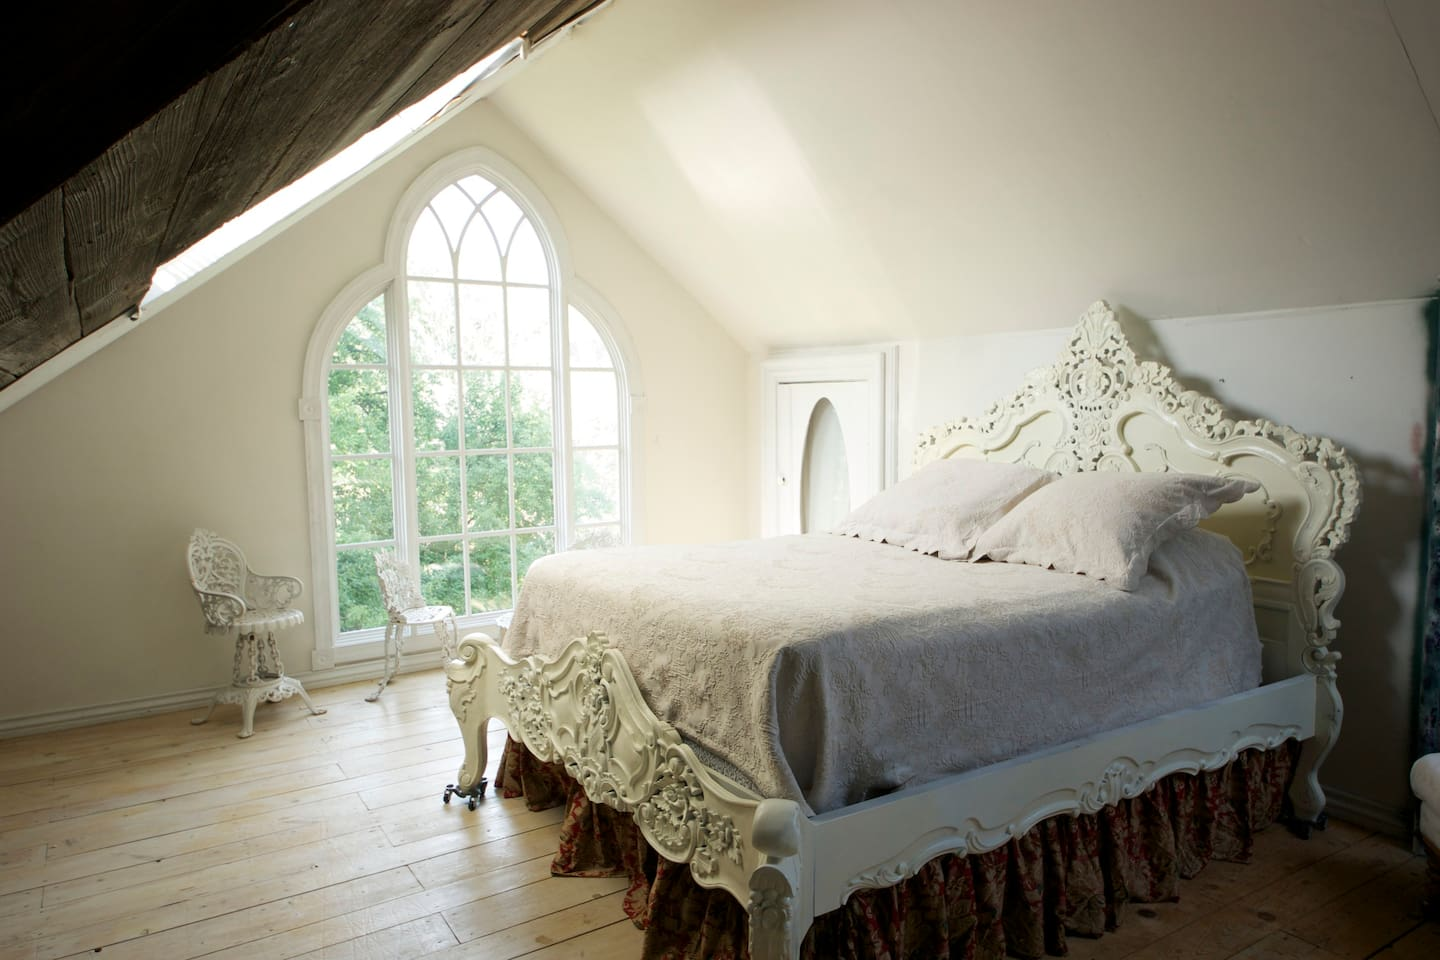 Attic Bedroom has queen bed, 3 chairs and footstools